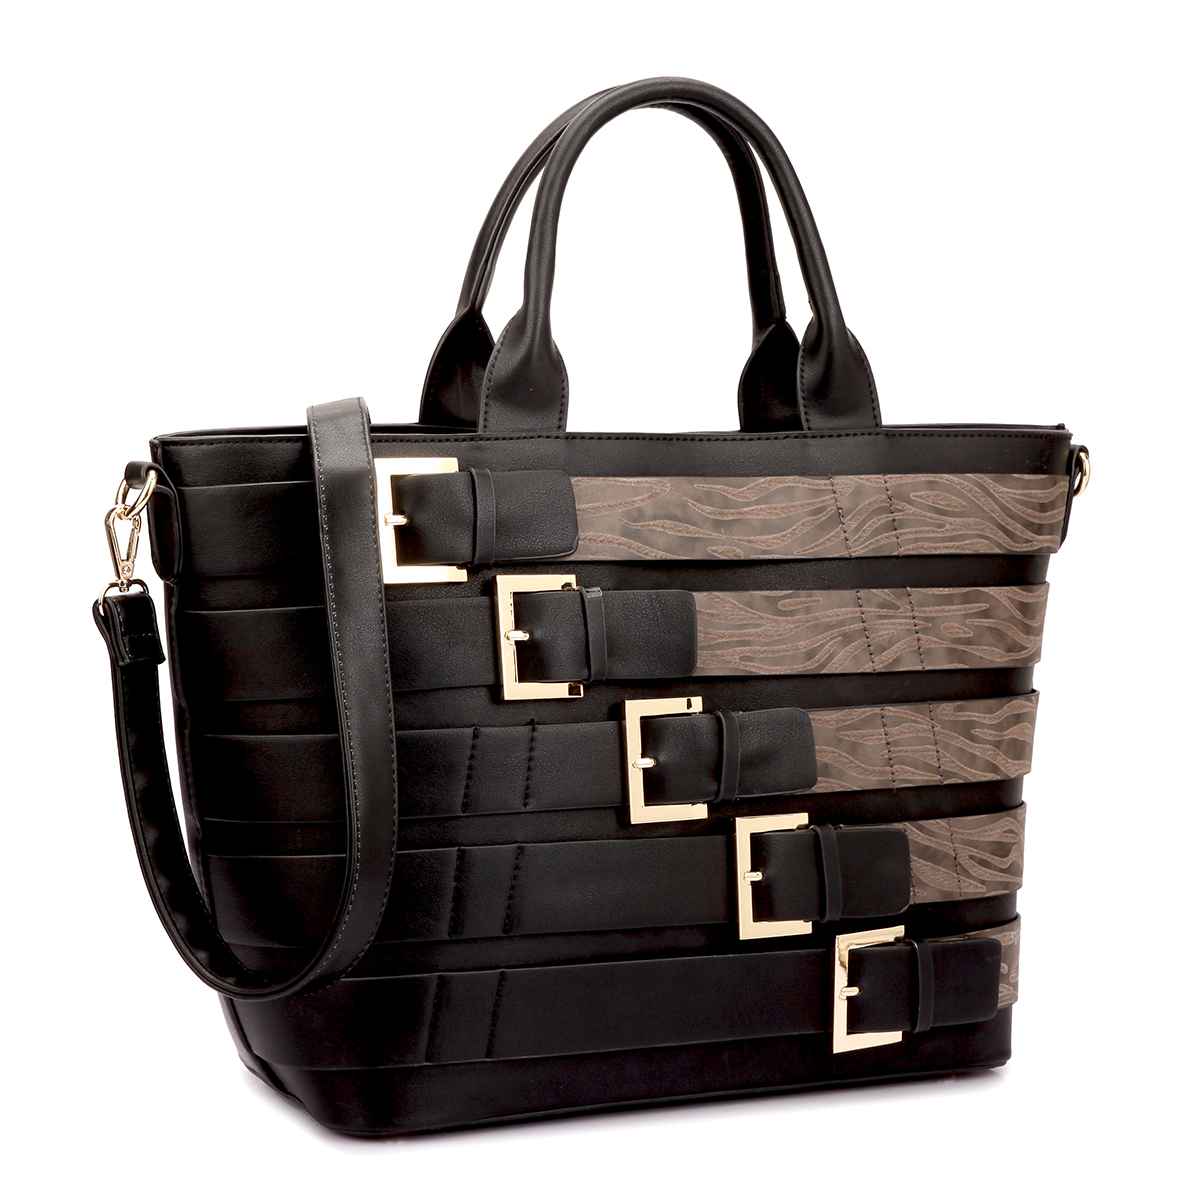 Medium Tote with Buckle Details